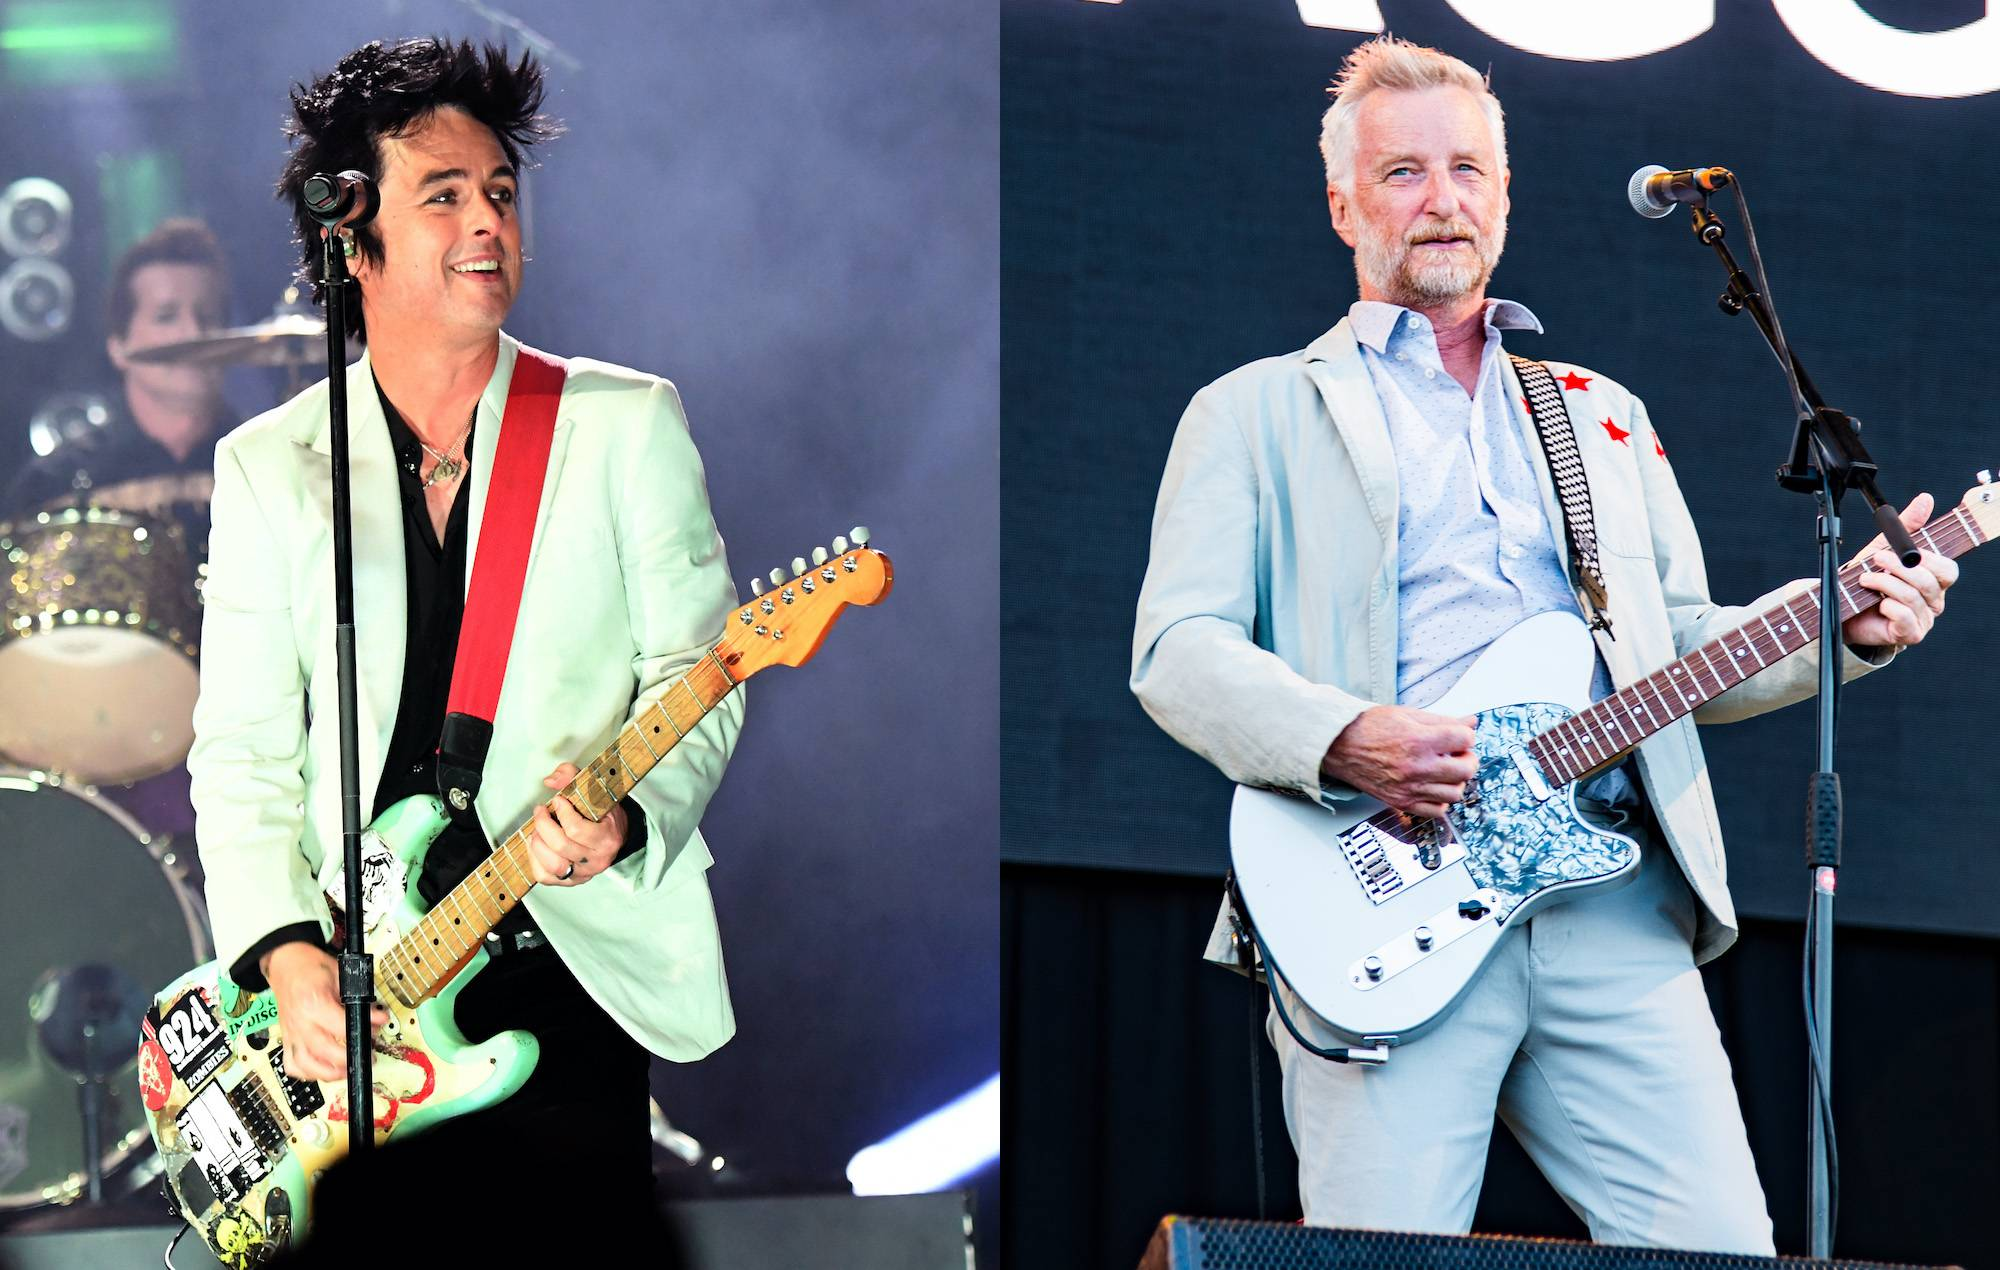 Hear Green Day's Billie Joe Armstrong cover Billy Bragg's 'A New England'